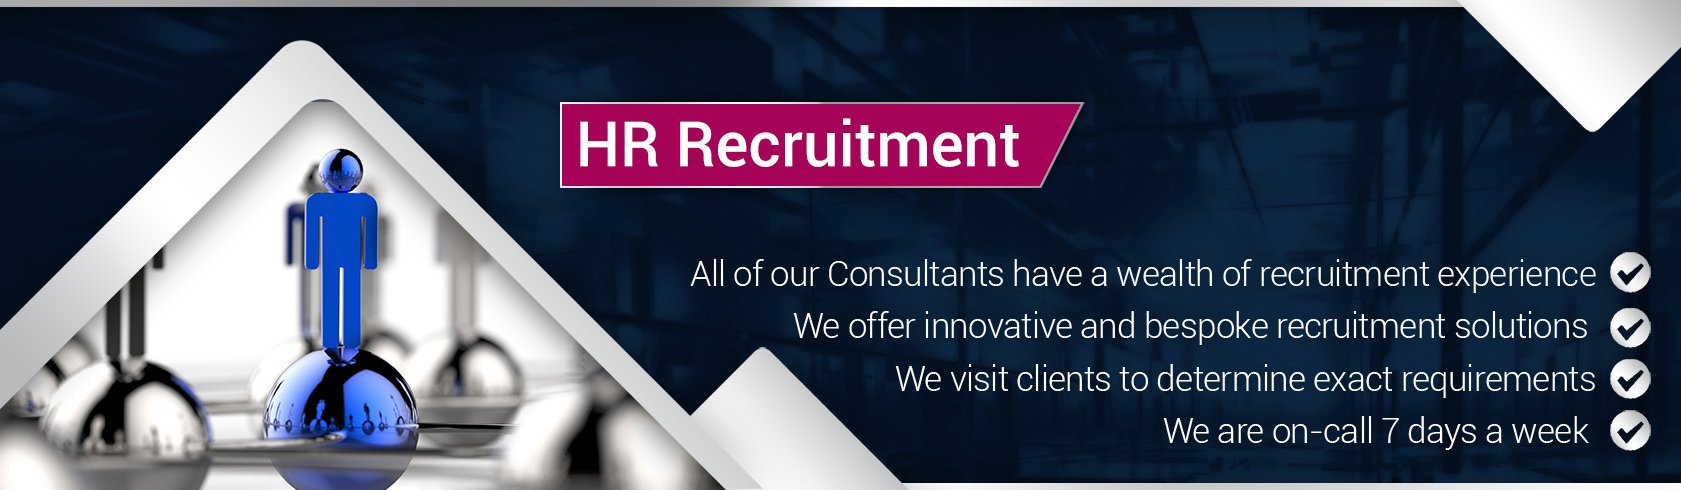 hr-recruitment-1